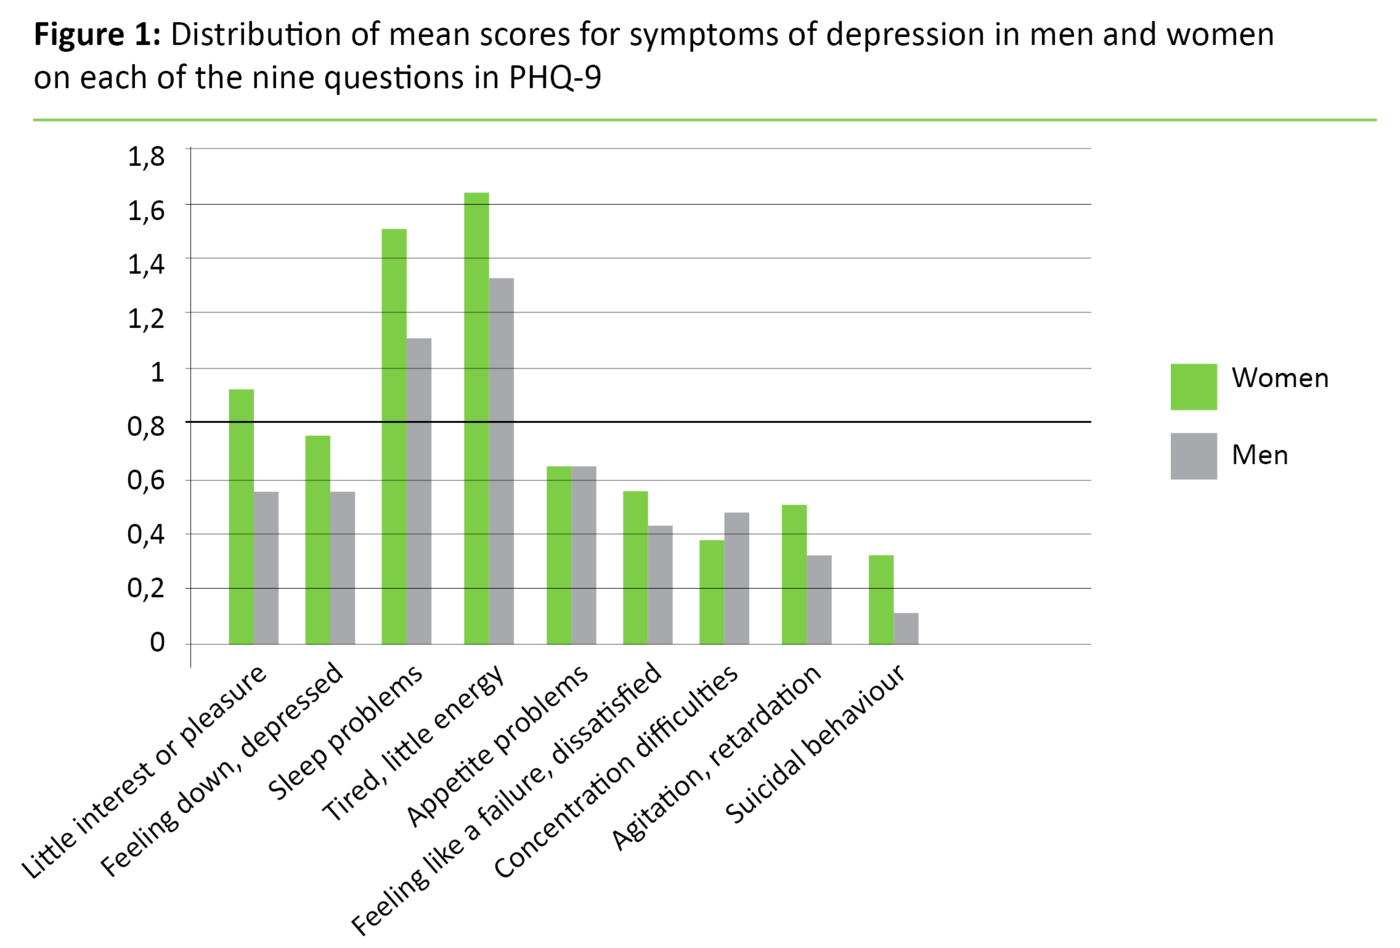 Figure 1. Distribution of mean scores for symptoms of depression in men and women on each of the nine questions in PHQ-9